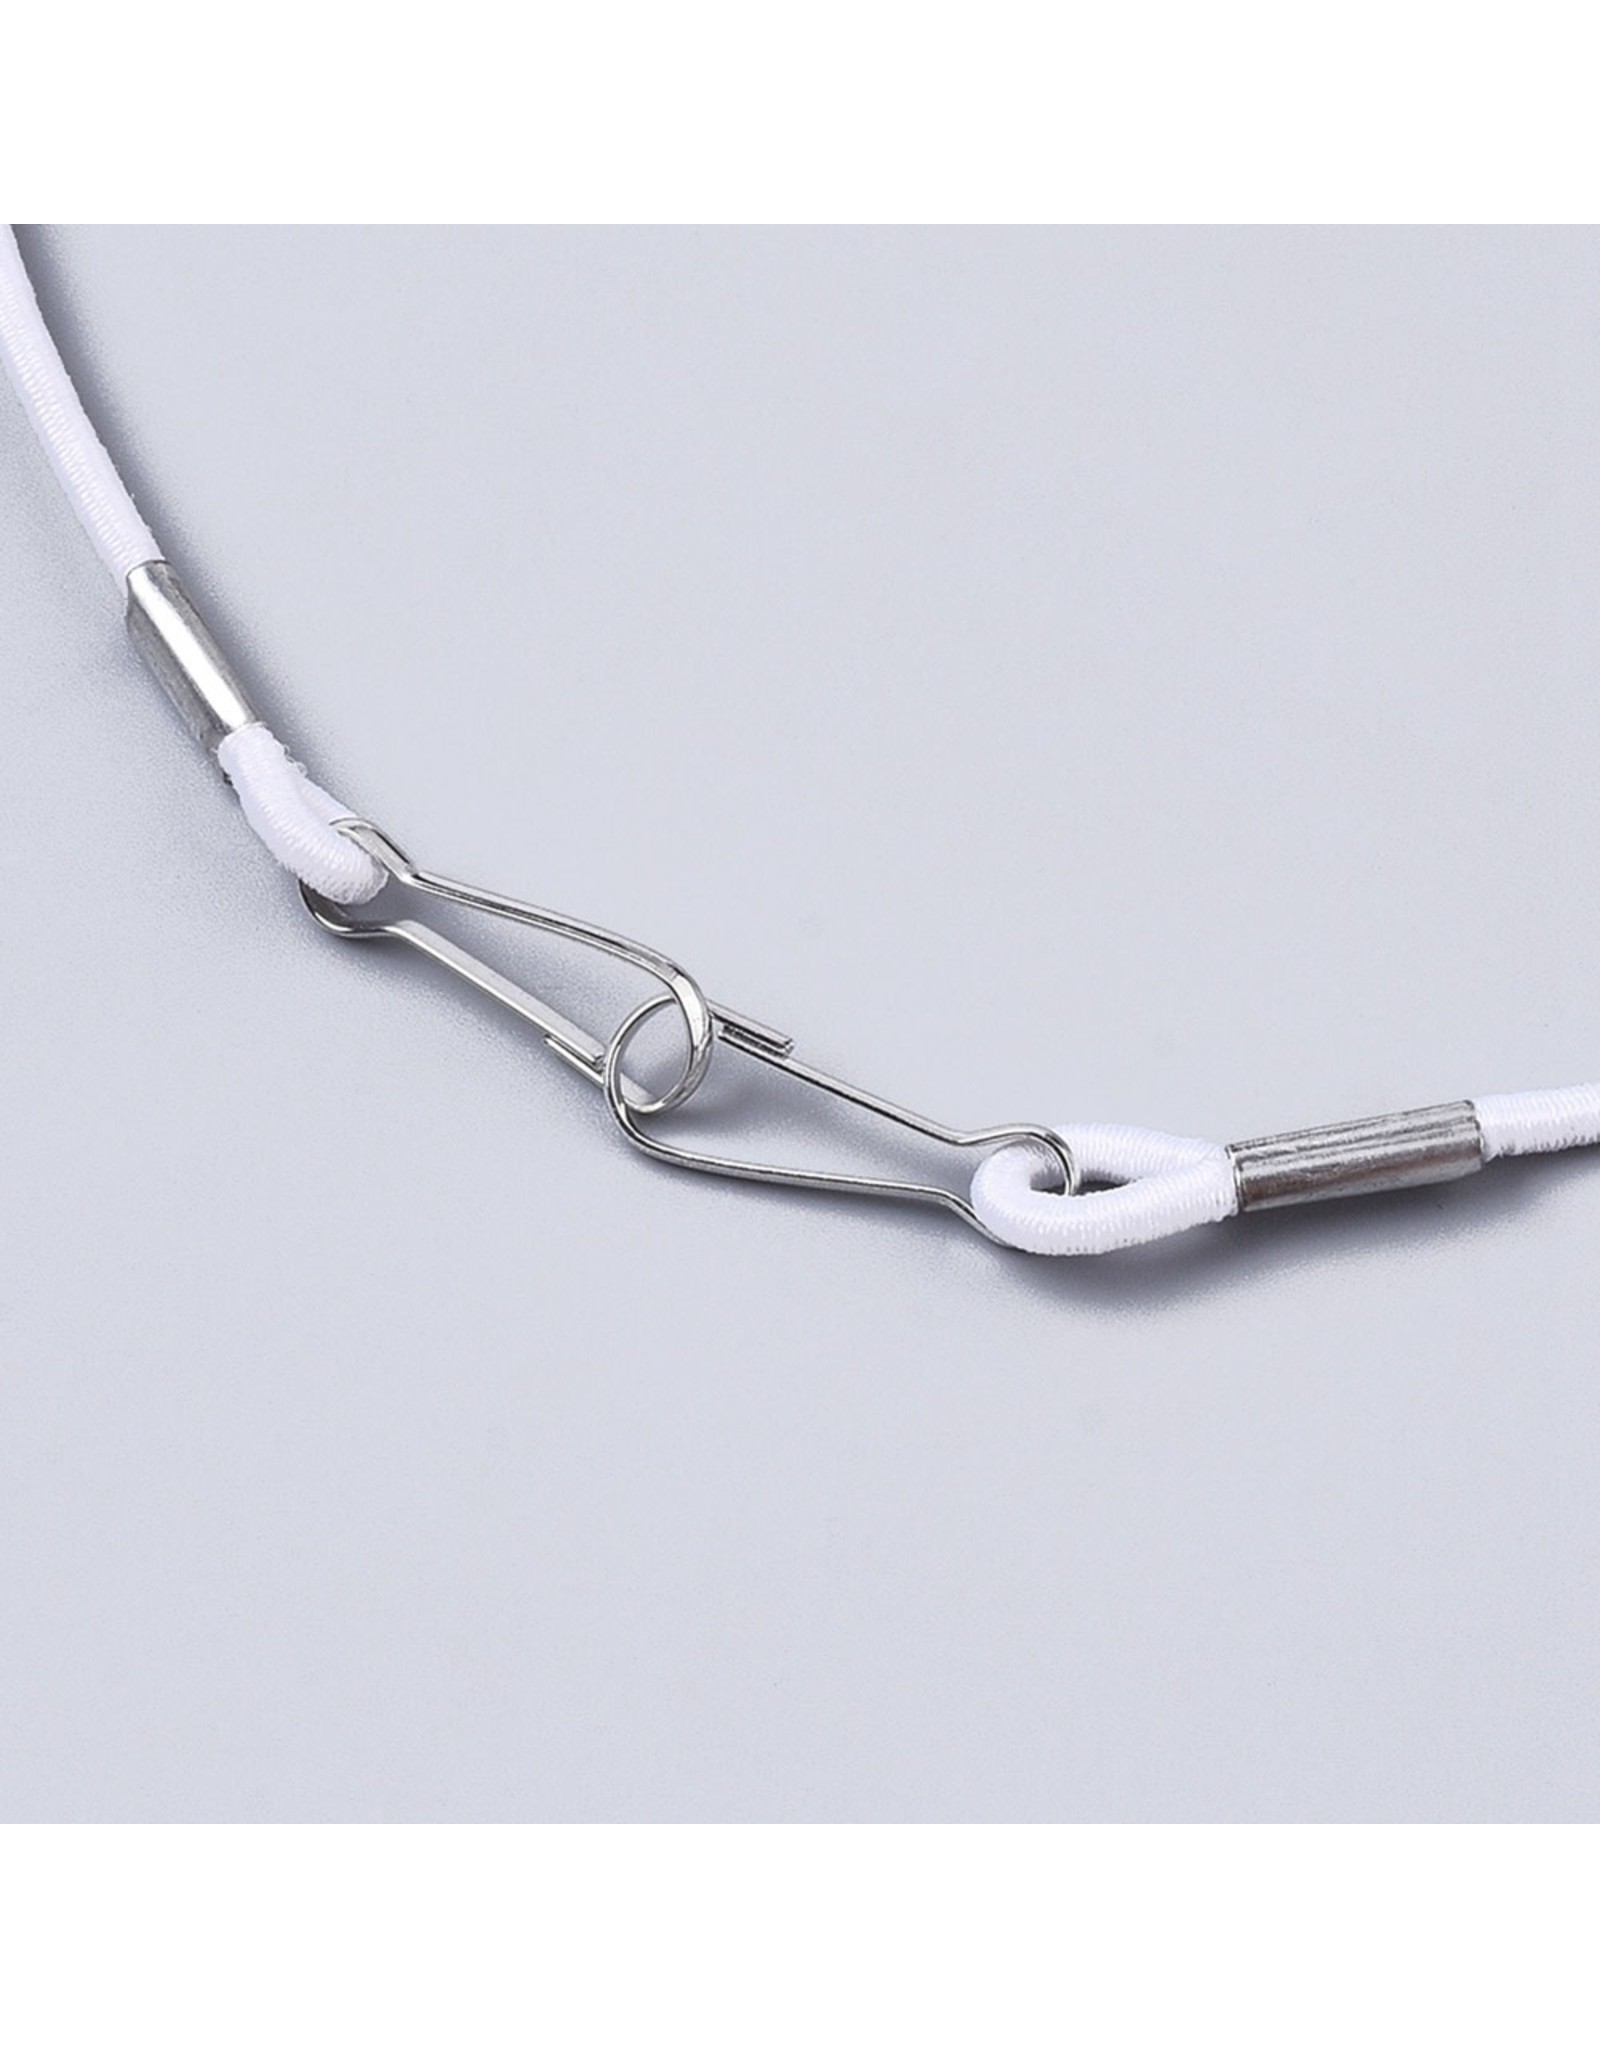 Lanyard Elastic Necklace  3mm x24'' White  x1